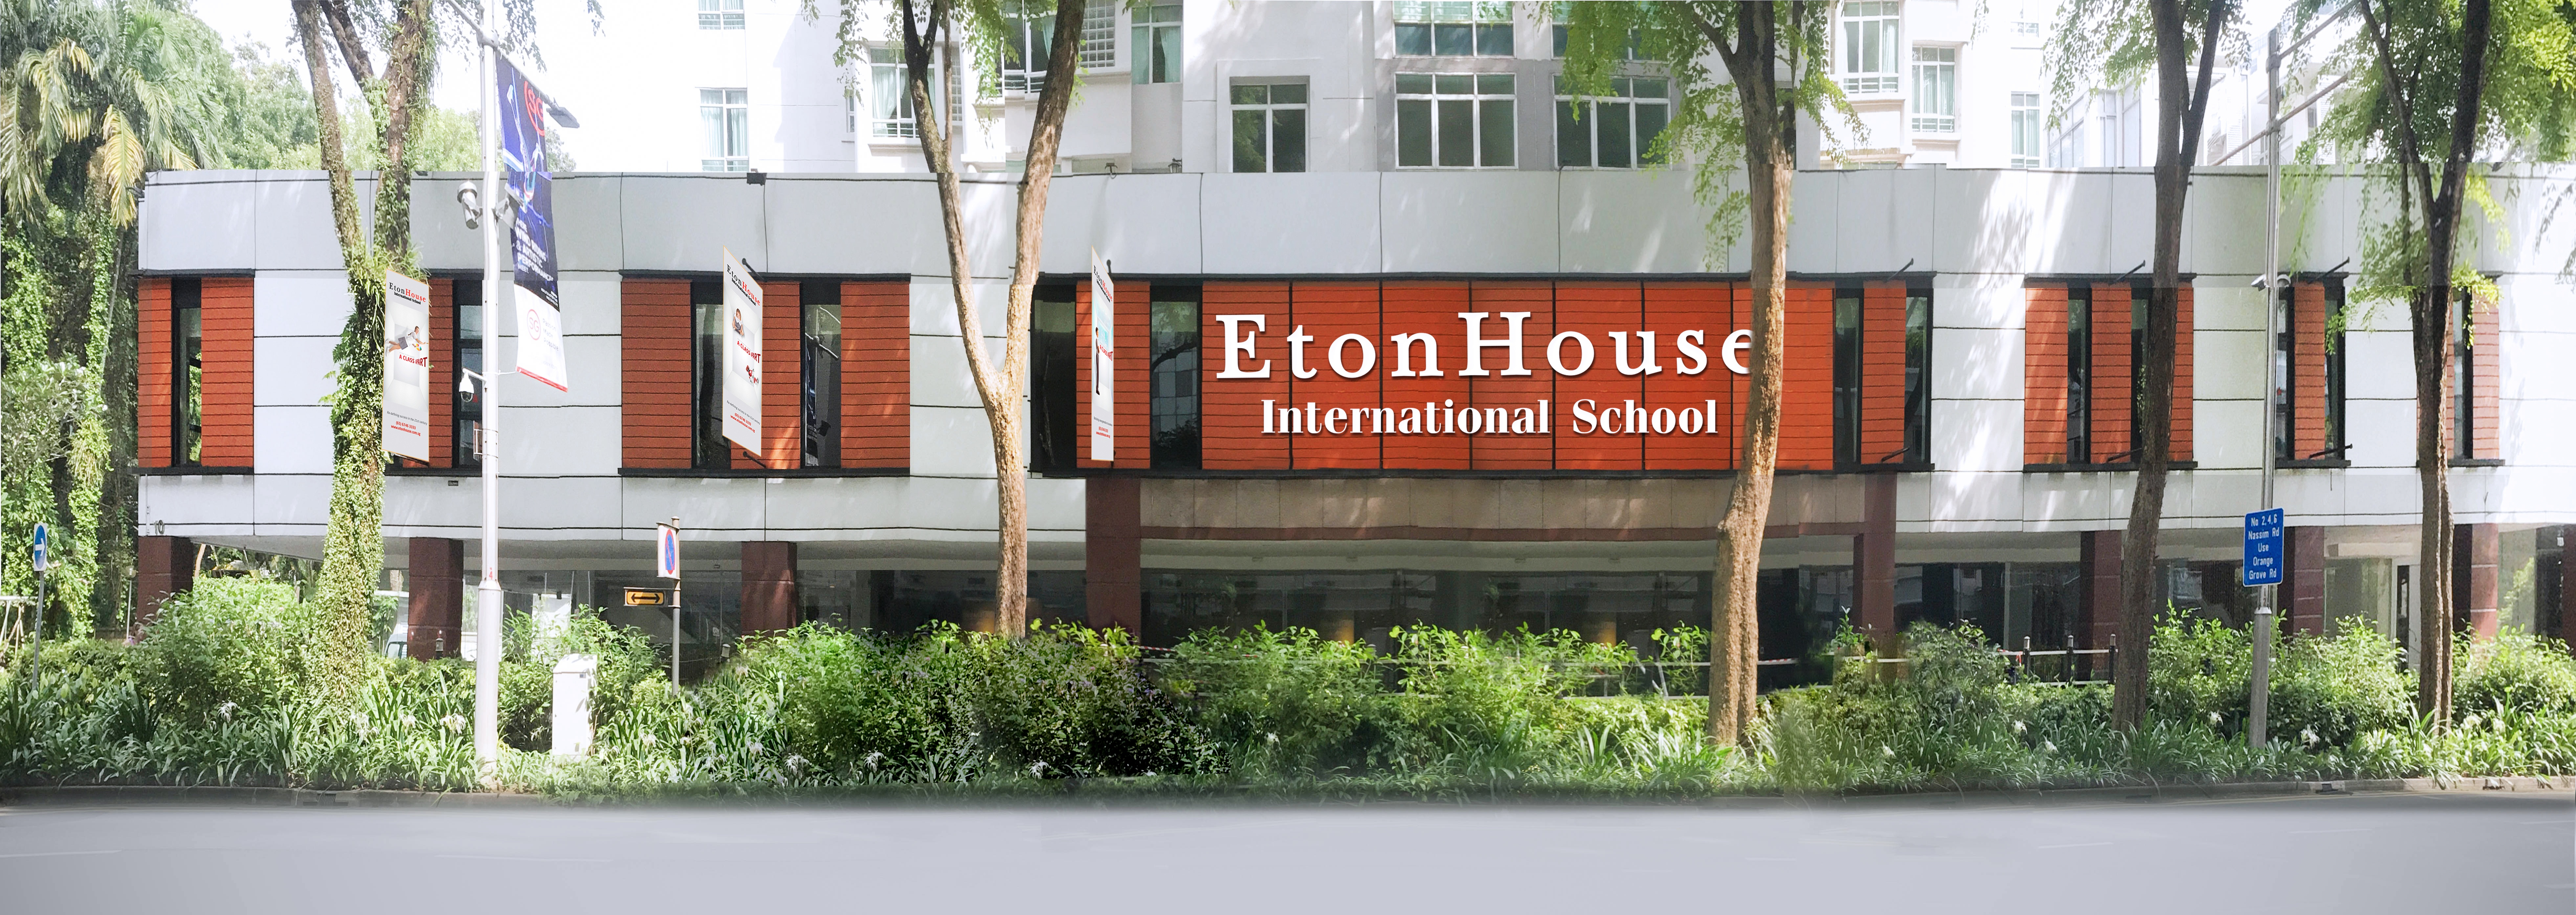 EtonHouse at Orchard